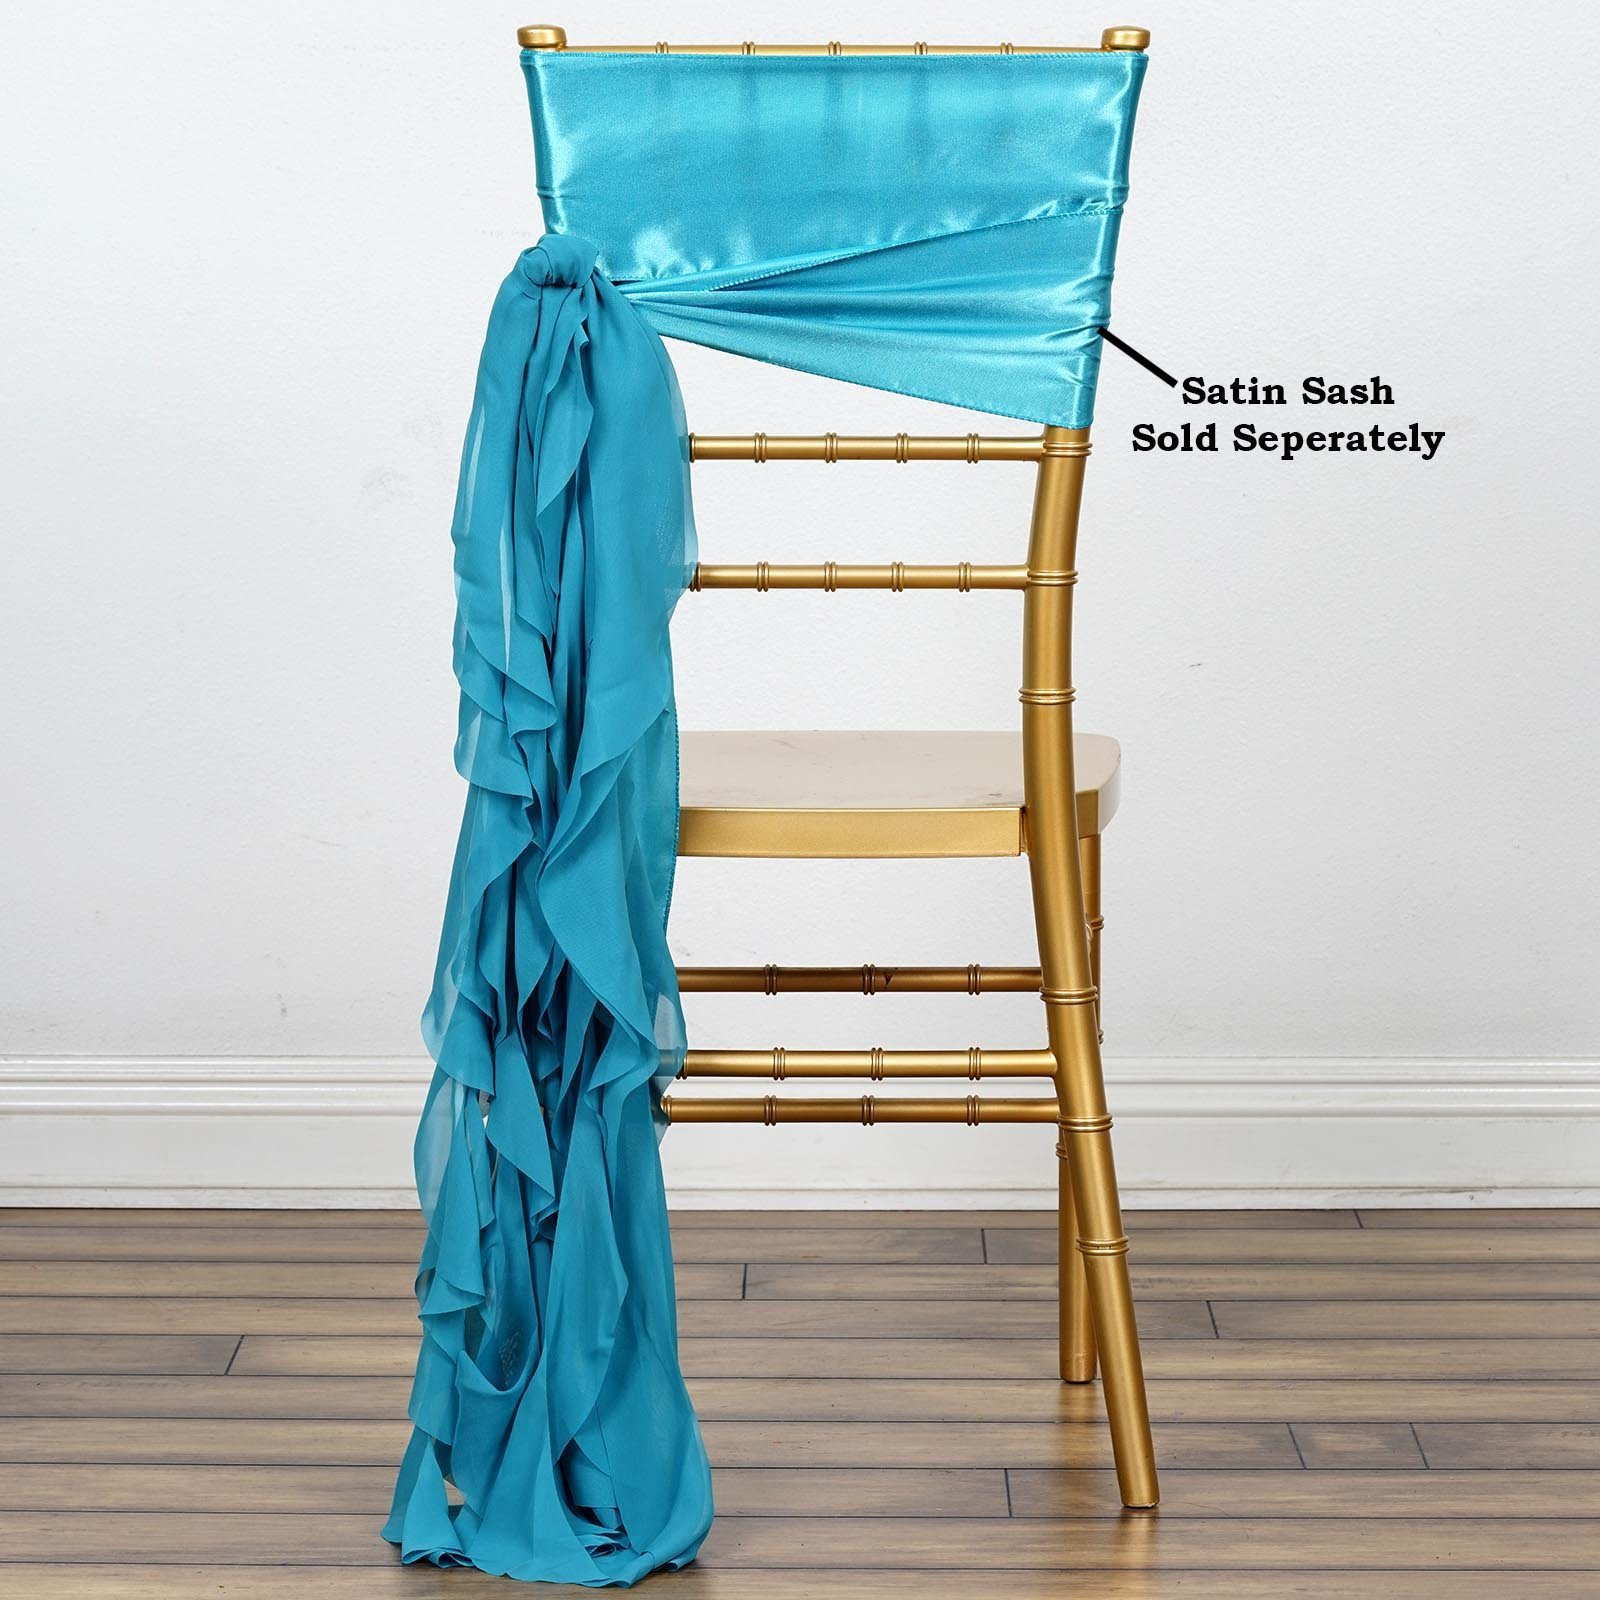 Efavormart Tableclothsfactory 5pcs Chiffon Turquoise Curly Chair Sashes For Home Wedding Birthday Party Dance Banquet Event Decoration